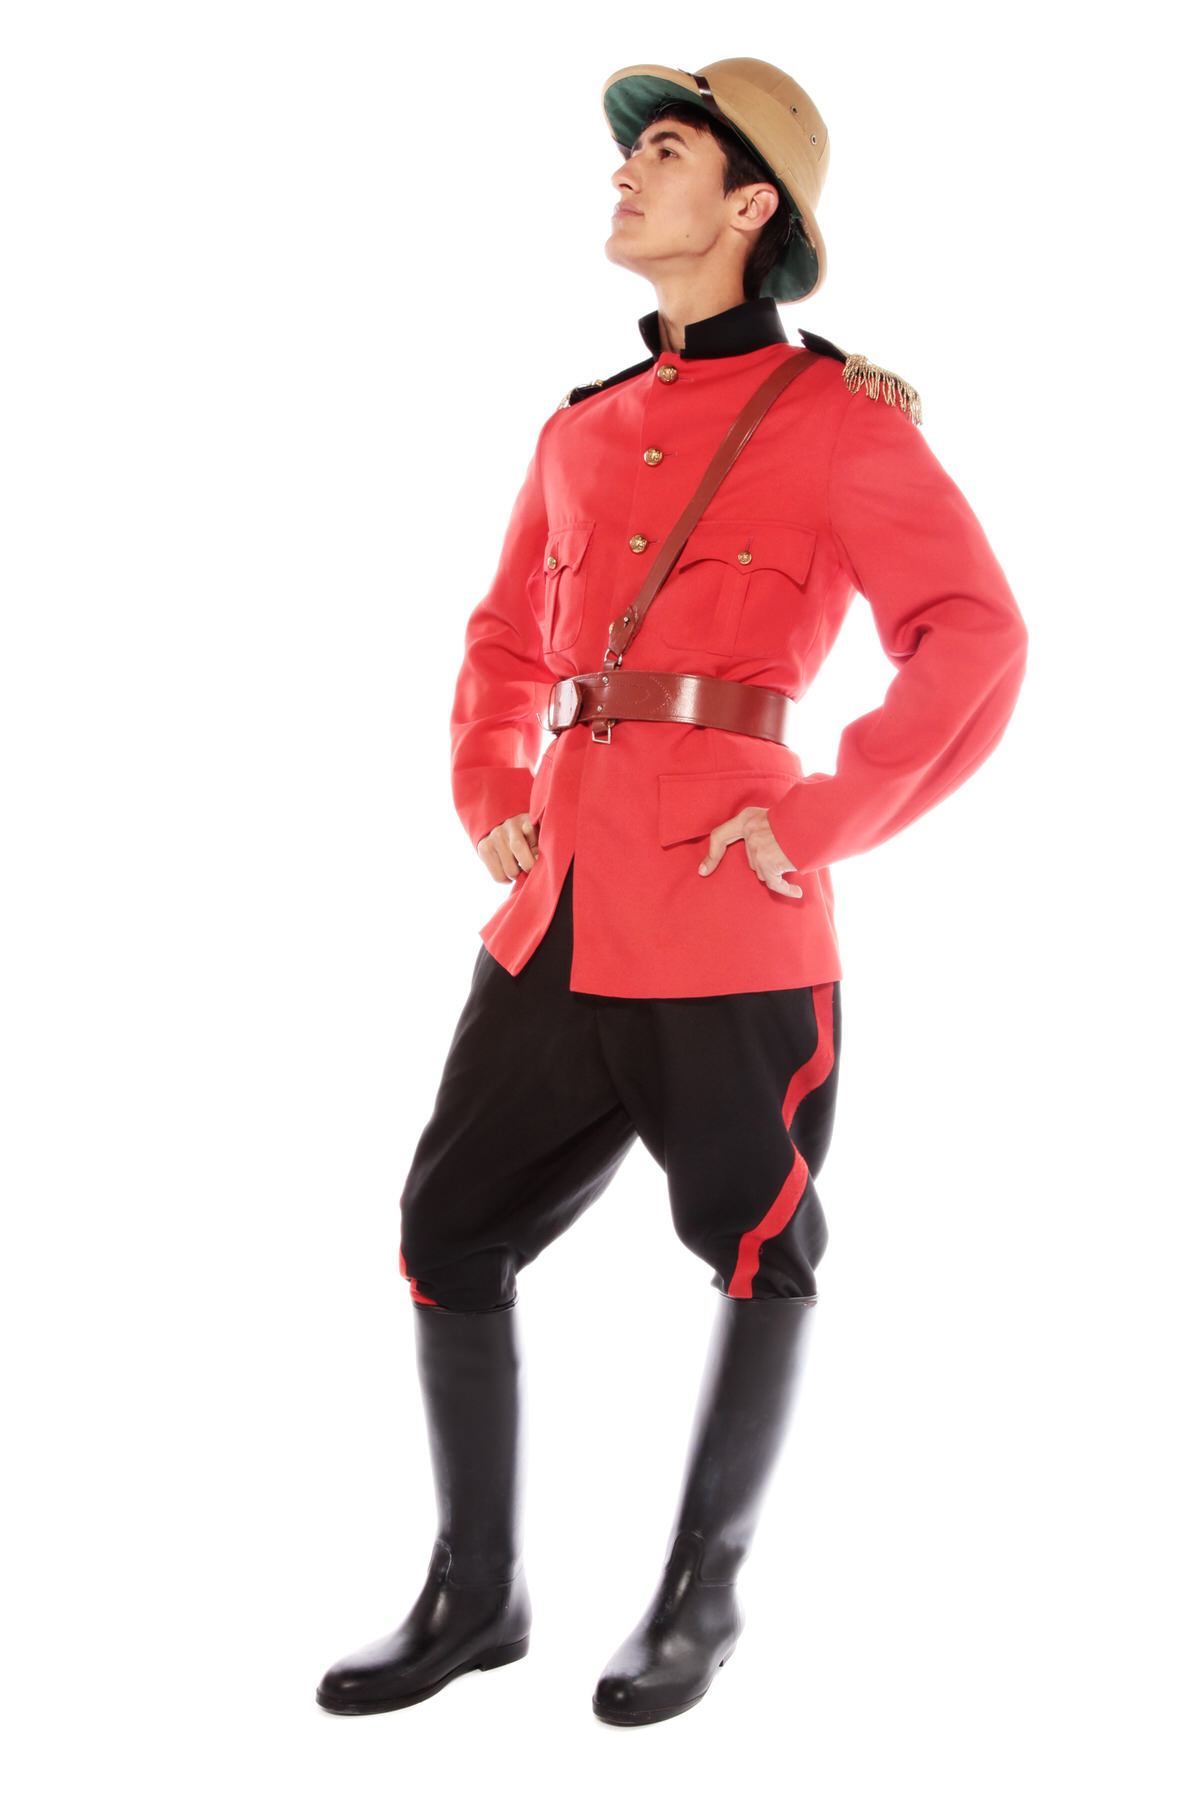 BOER WAR BRITISH SOLDIER COSTUME W HAT & RED JACKET